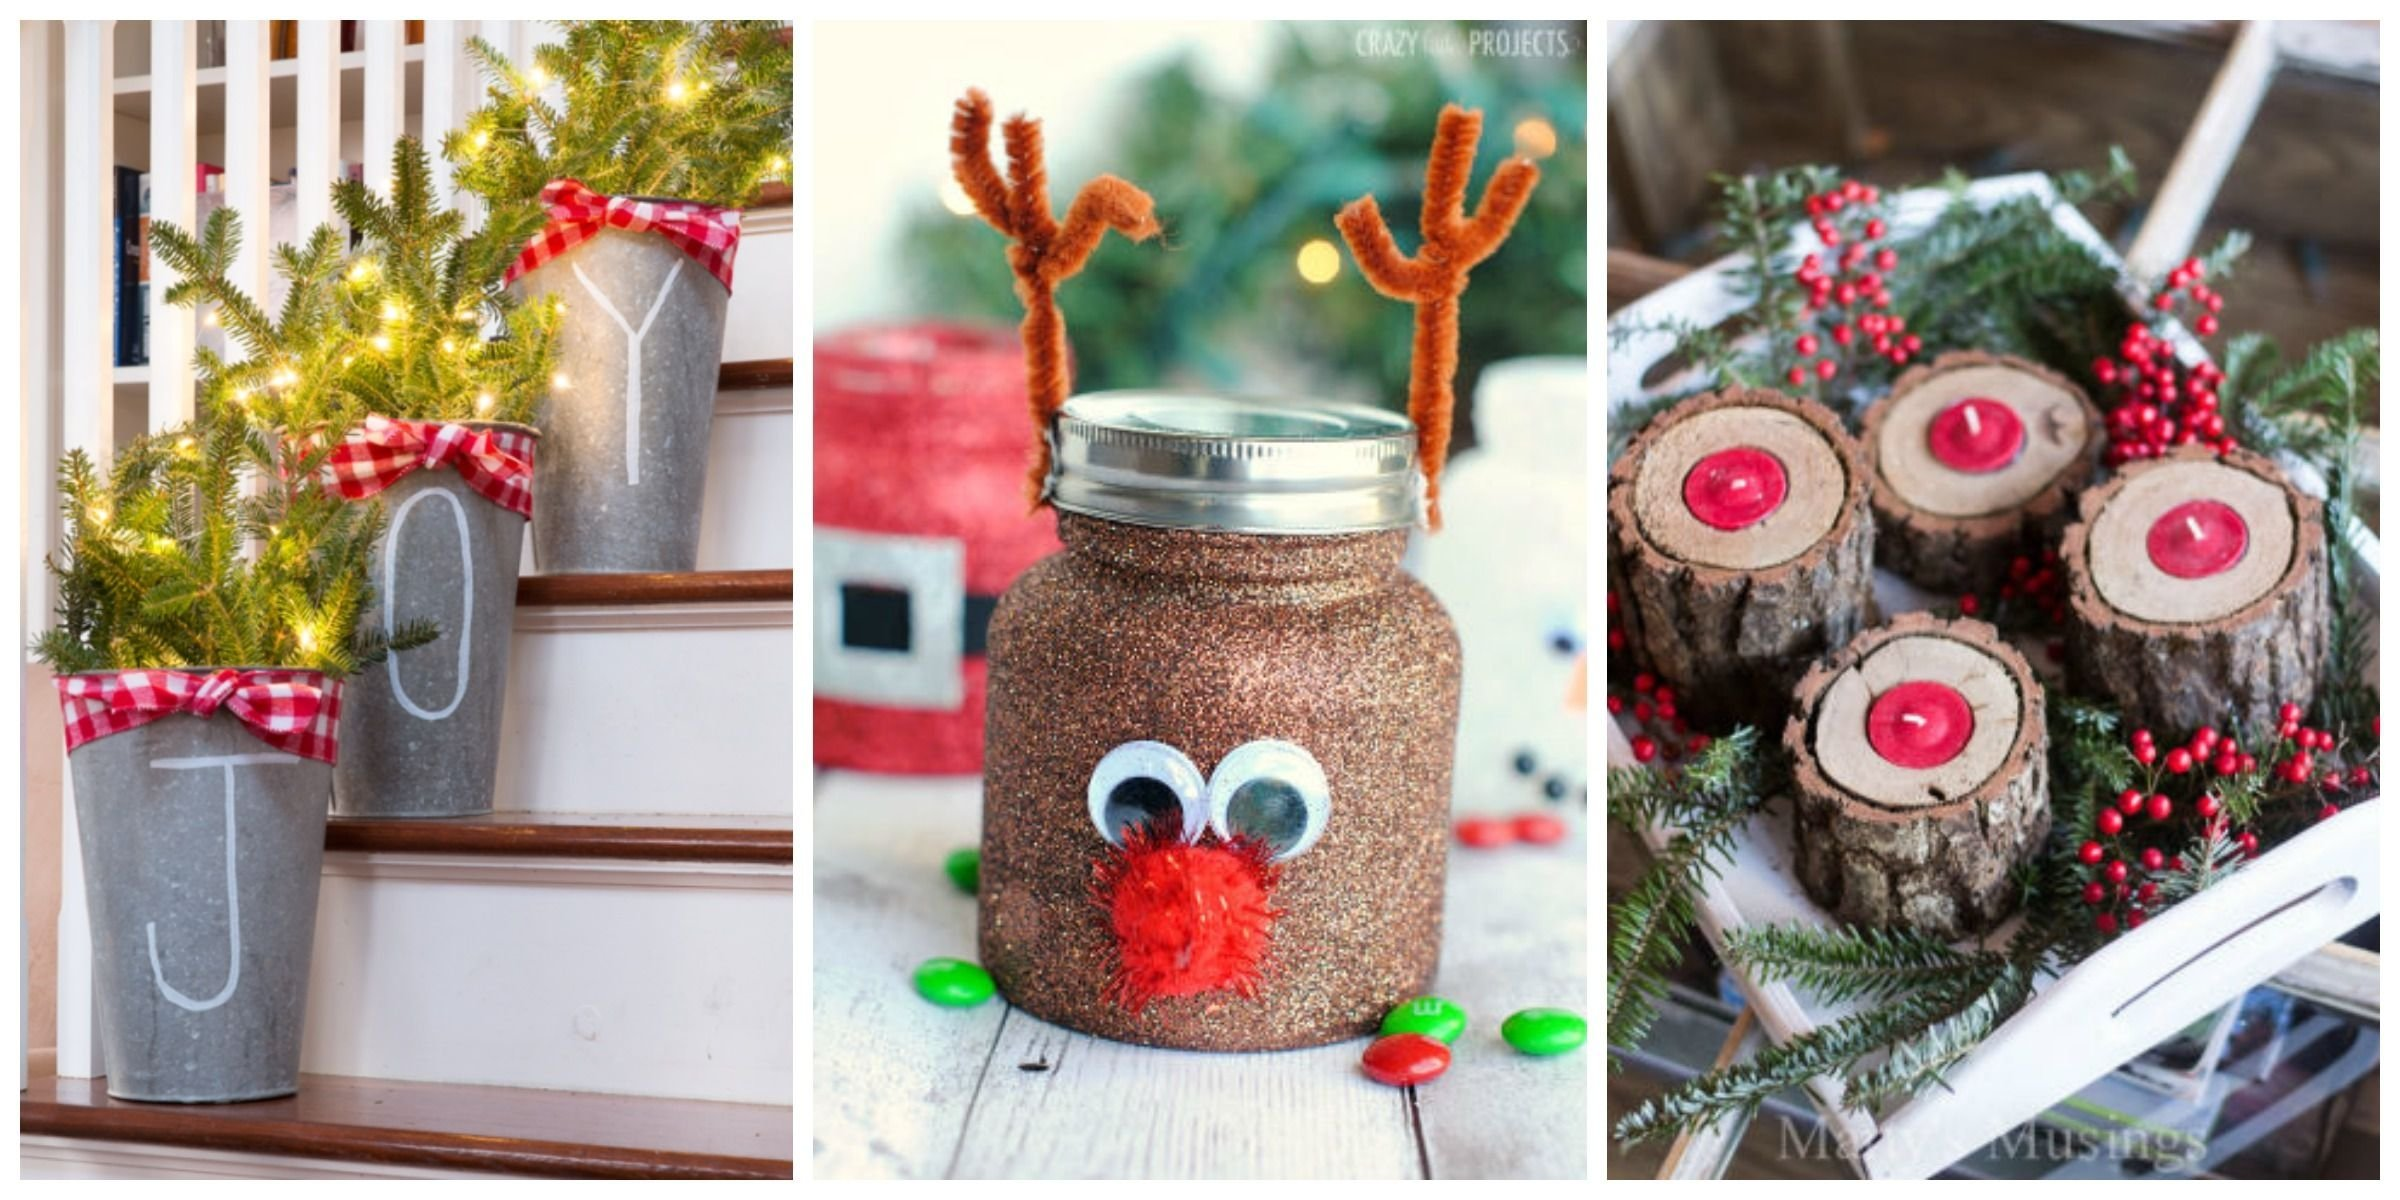 10 Unique Christmas Craft Ideas For Adults 55 Easy Crafts Simple Diy Holiday